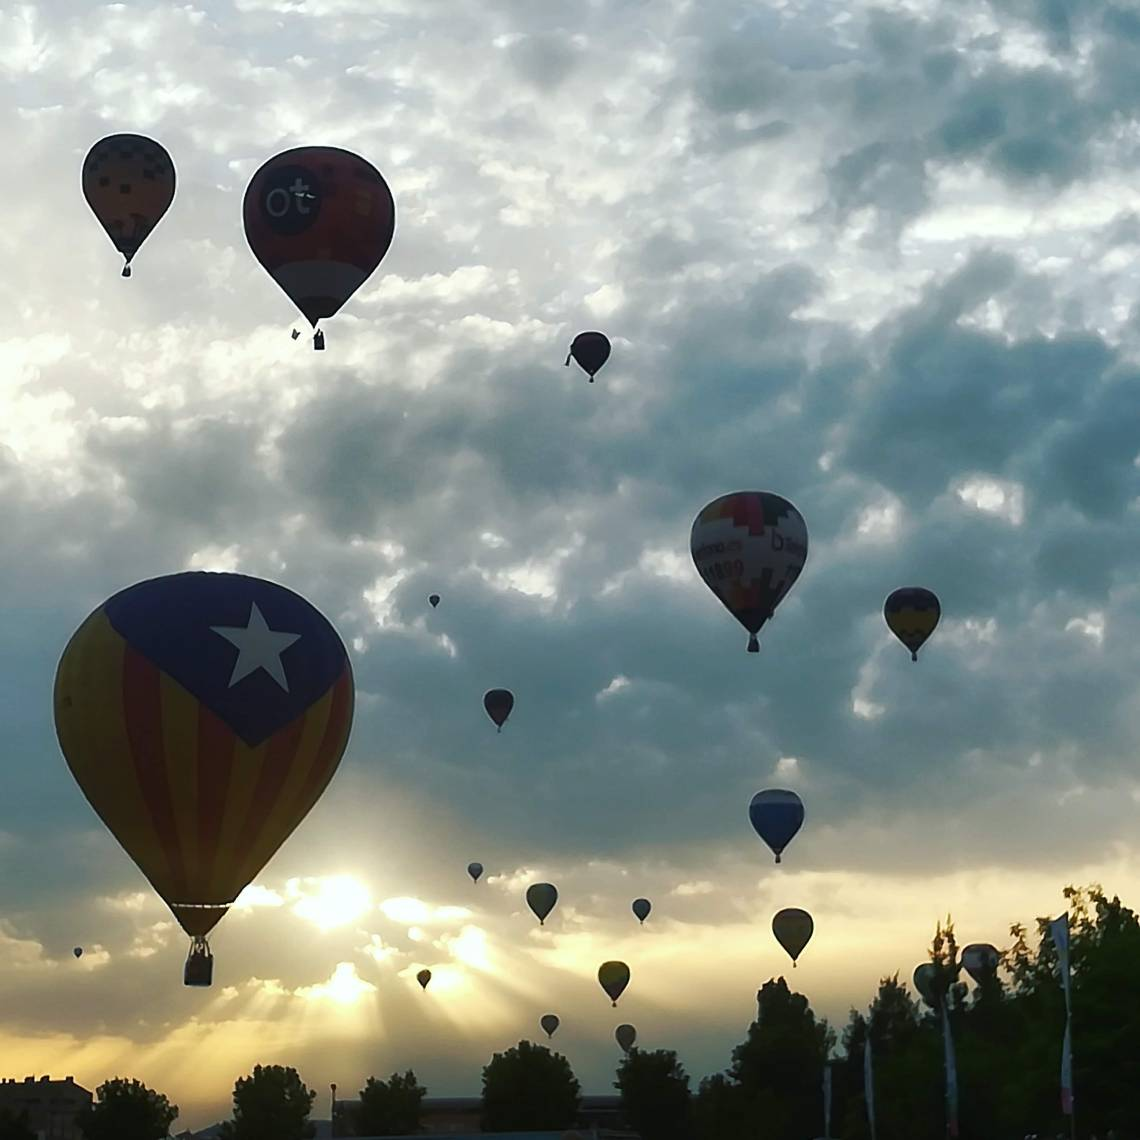 The European Balloon Festival. Shot of the sky from below, with many balloons silhouetted in the background. The foreground shows a balloon with the Catalan flag.